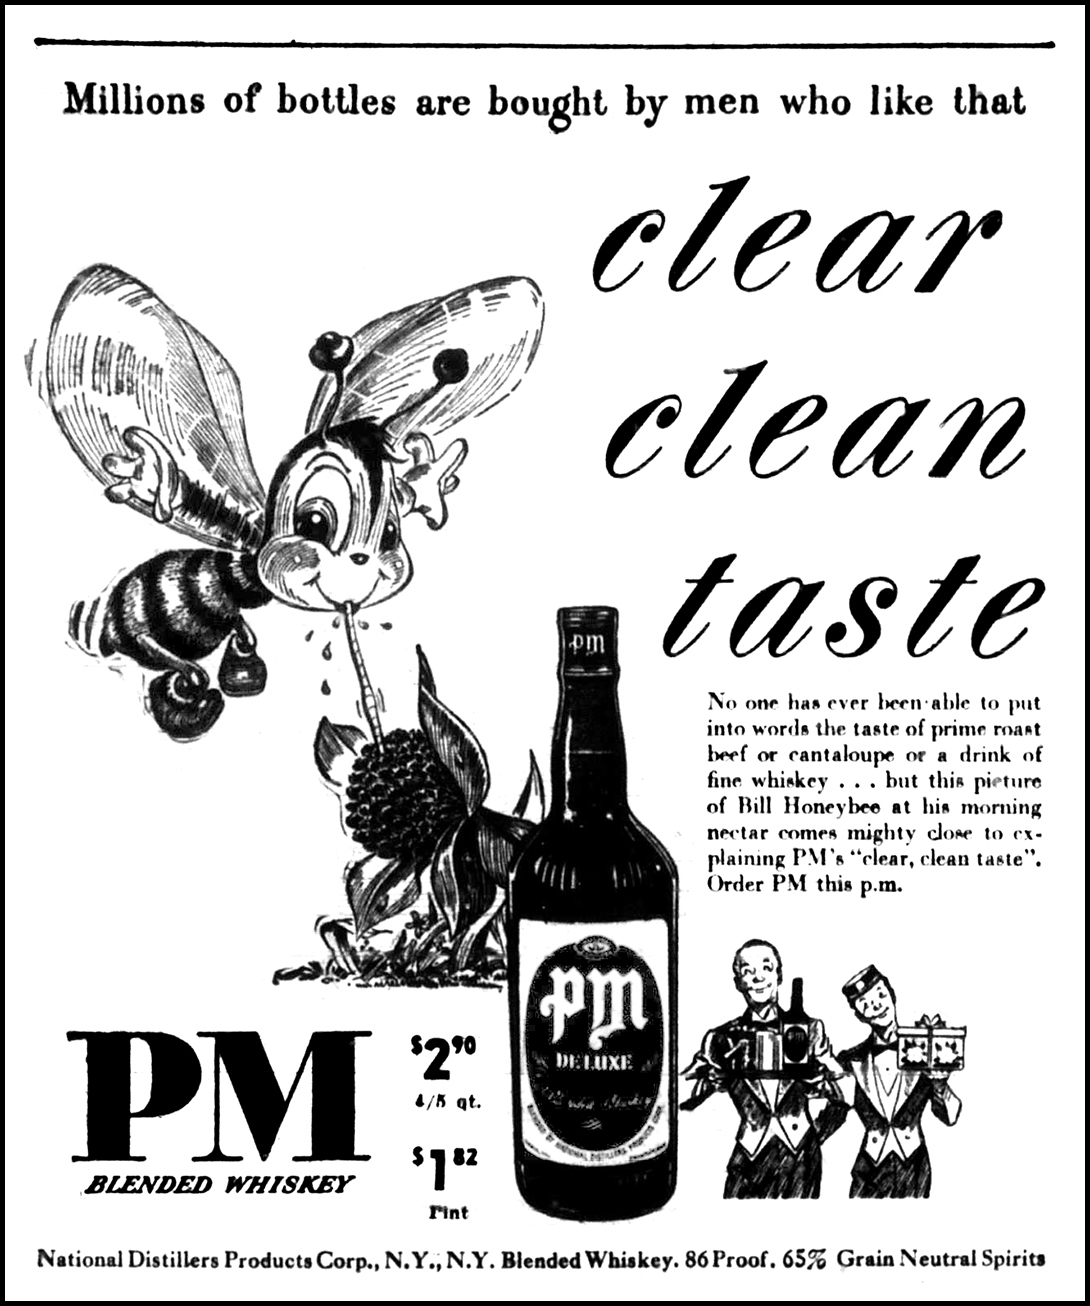 brady s bunch of lorain county nostalgia Good Advertisements bee lieve it or not the above ad for pm blended whiskey which ran in the lorain journal on november 16 1949 caught my eye